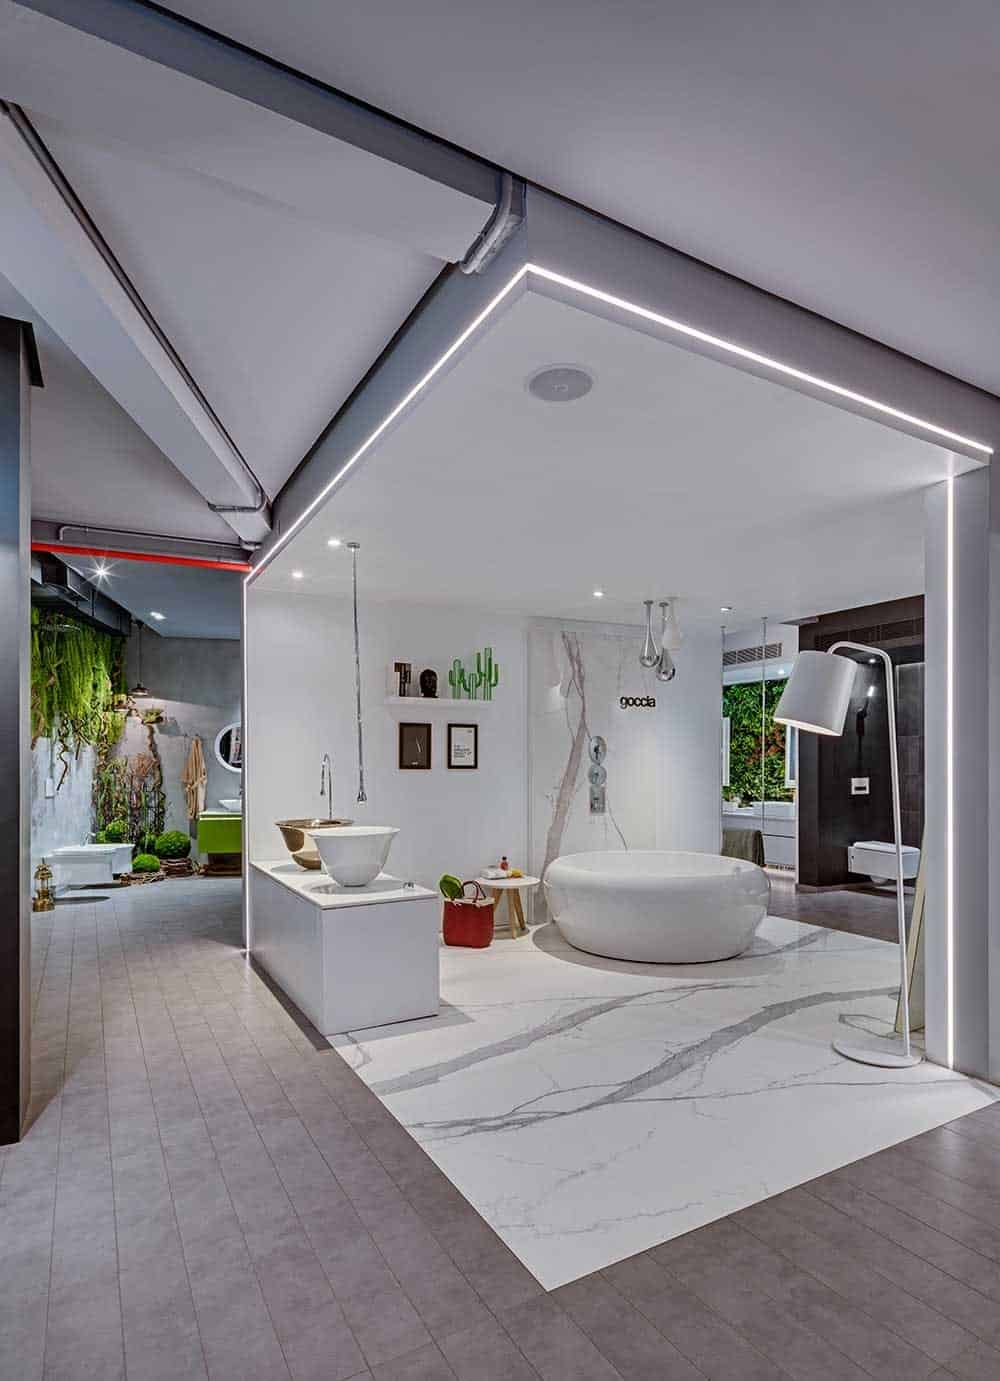 ABC Emporio interior display of bathroom fitting and accessories